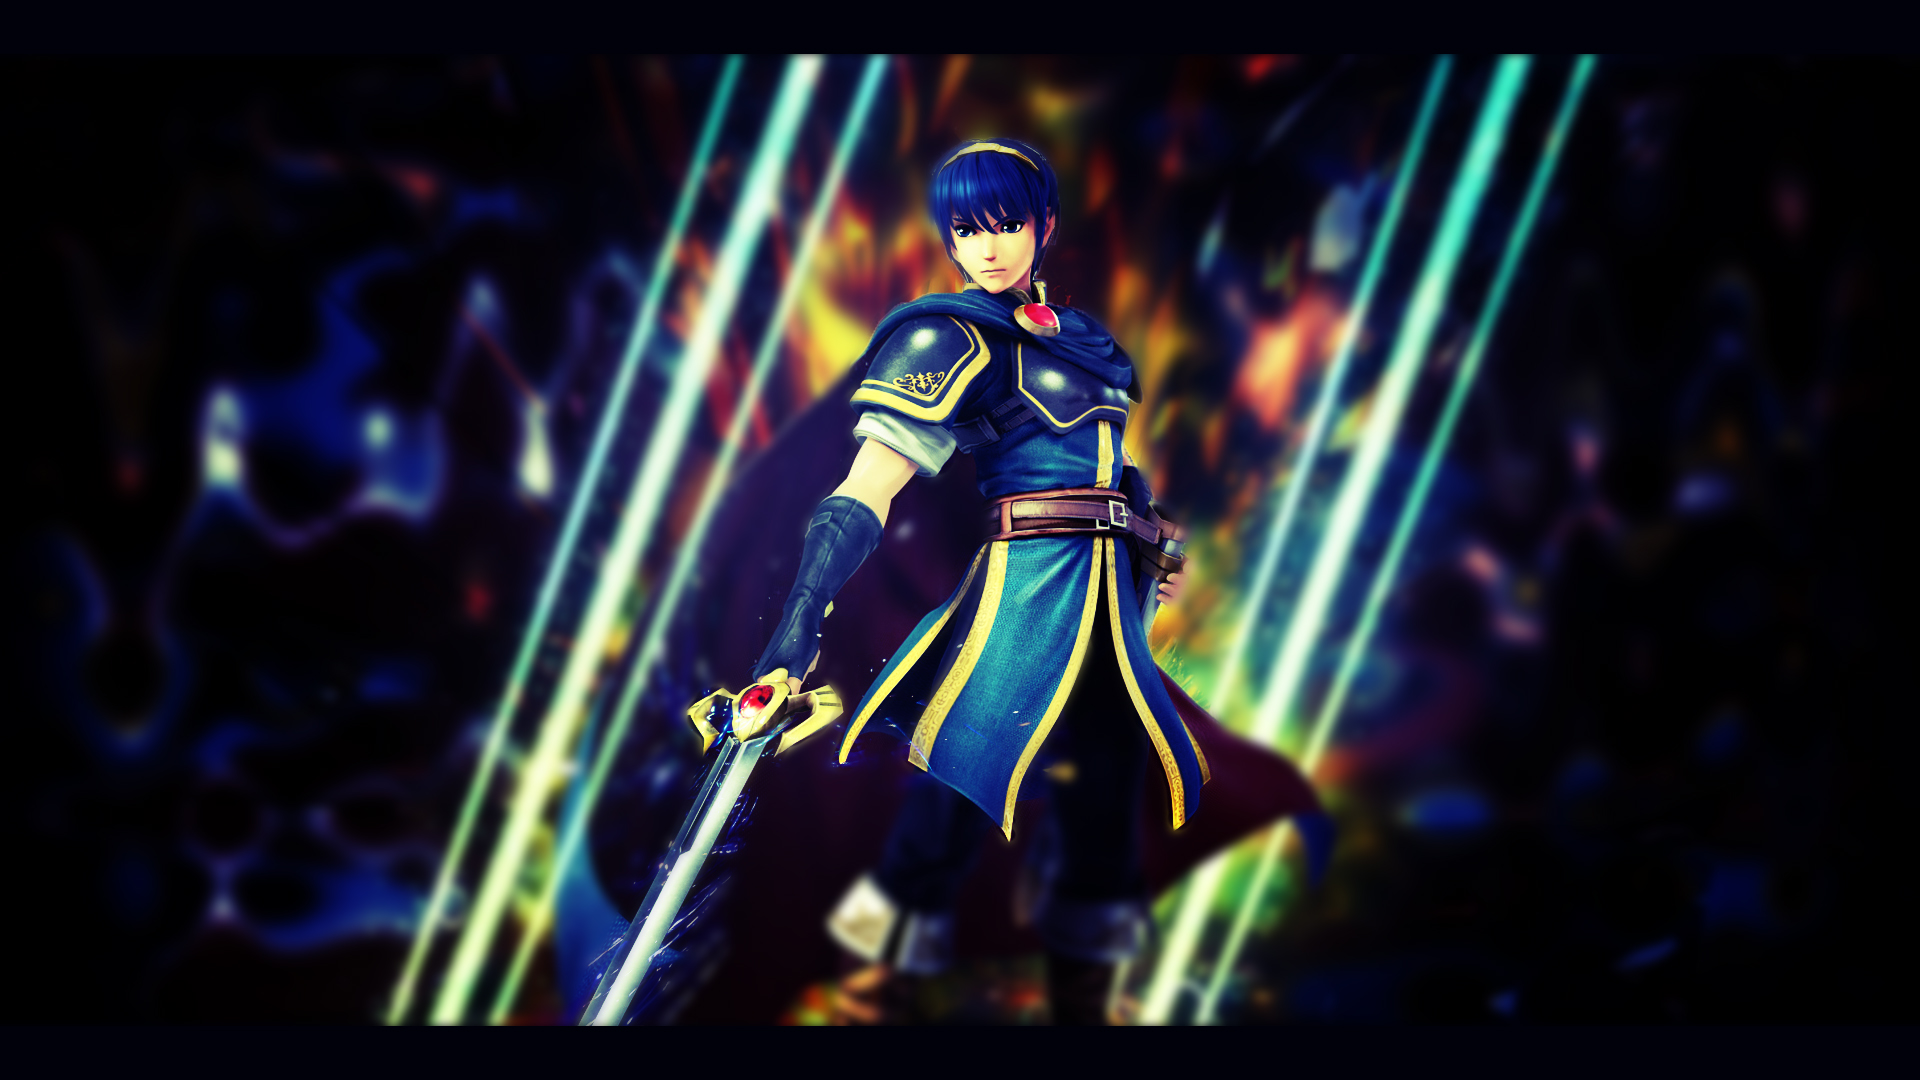 marth the hero king wallpaper by pato miguel on deviantart